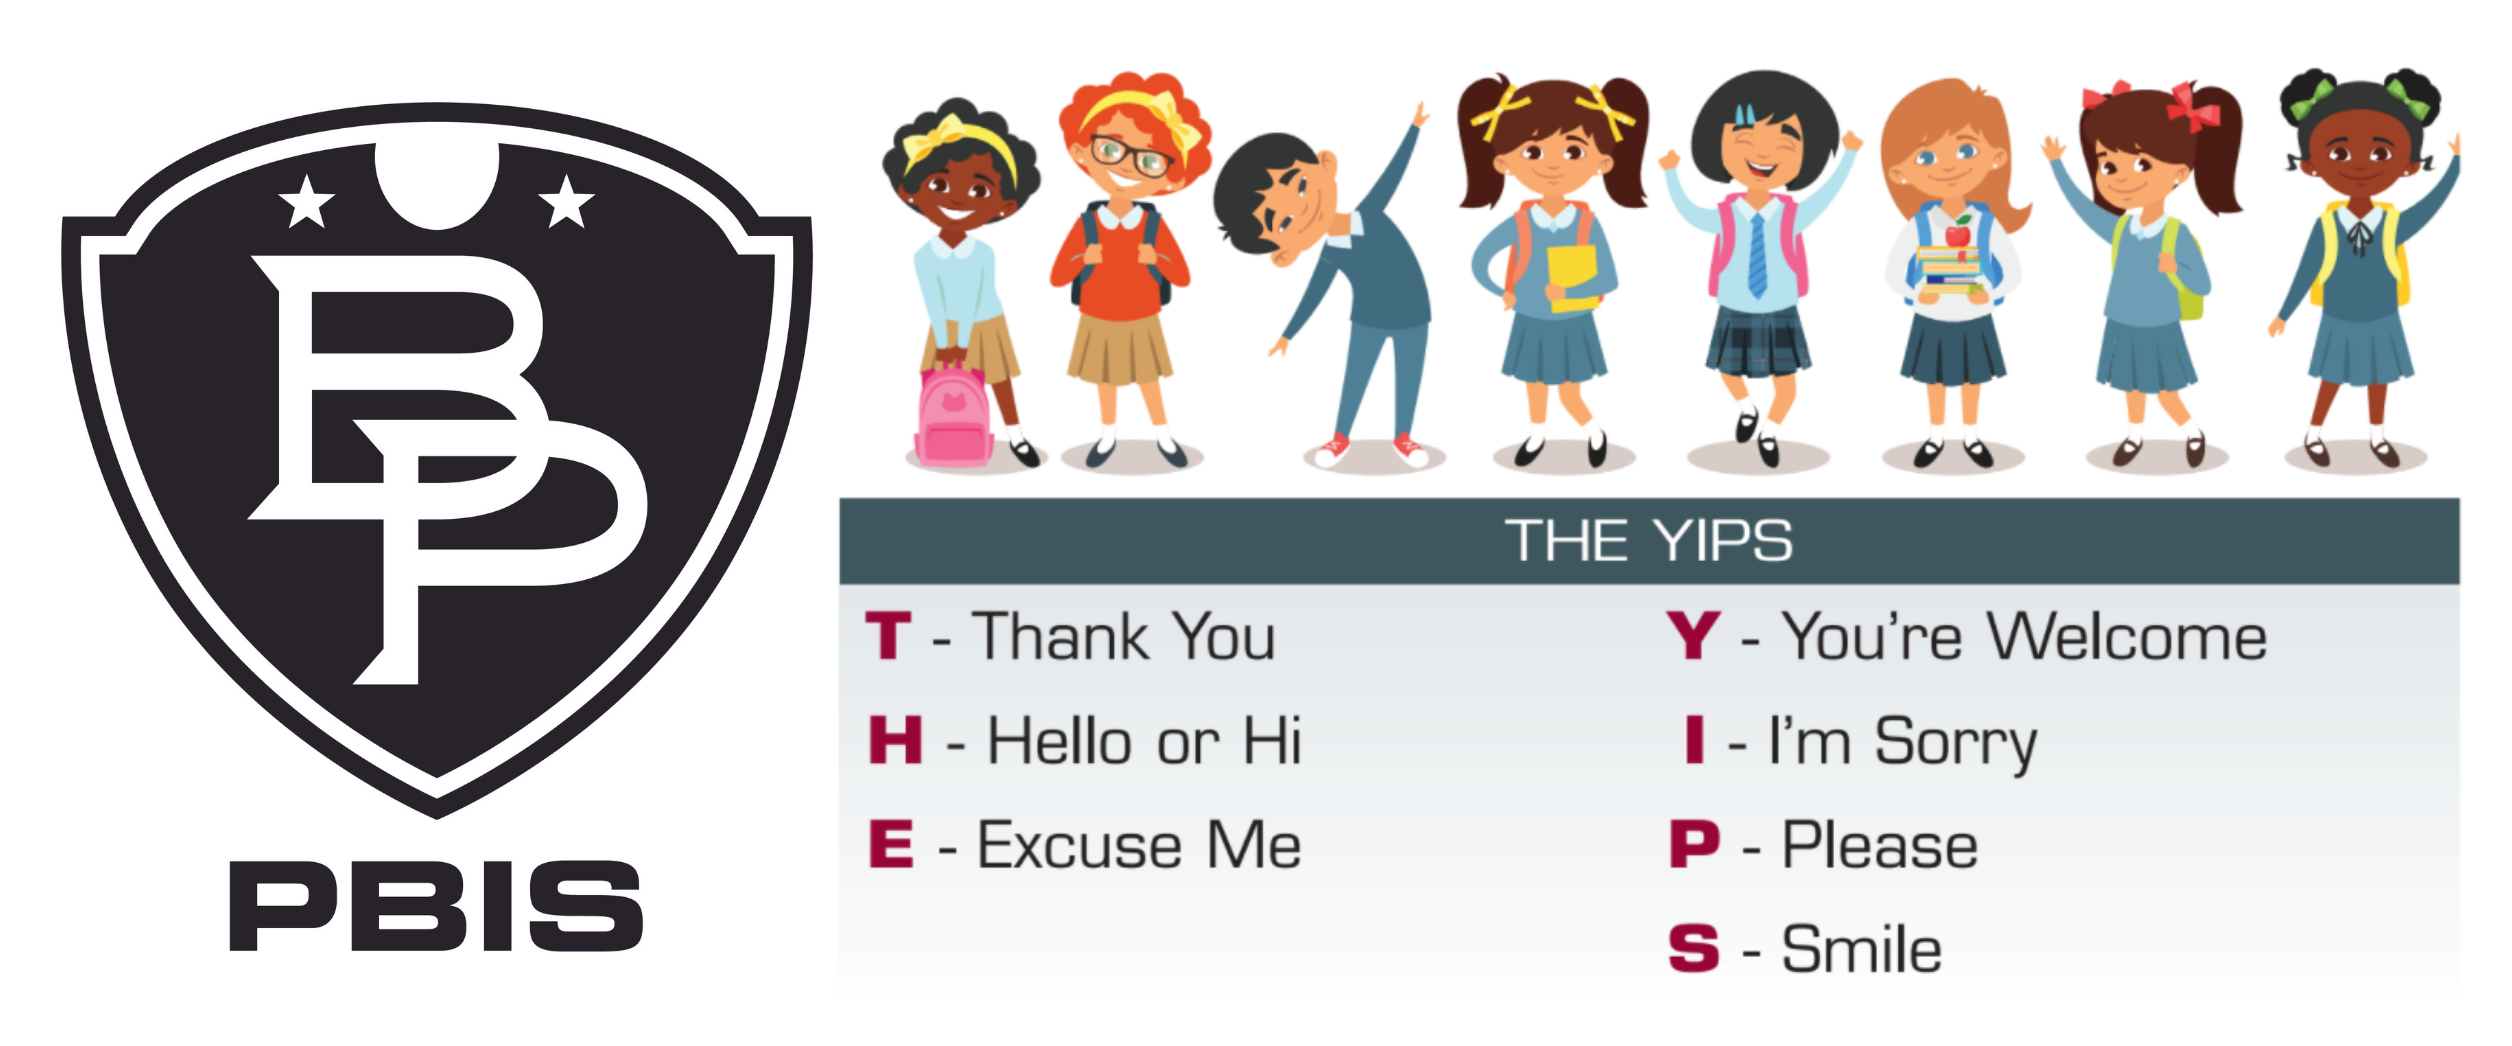 a black and white B-P patriots shield logo is shown with the letters PBIS underneath, next to eight animated figures of children with the acronym THE YIPS spelled out